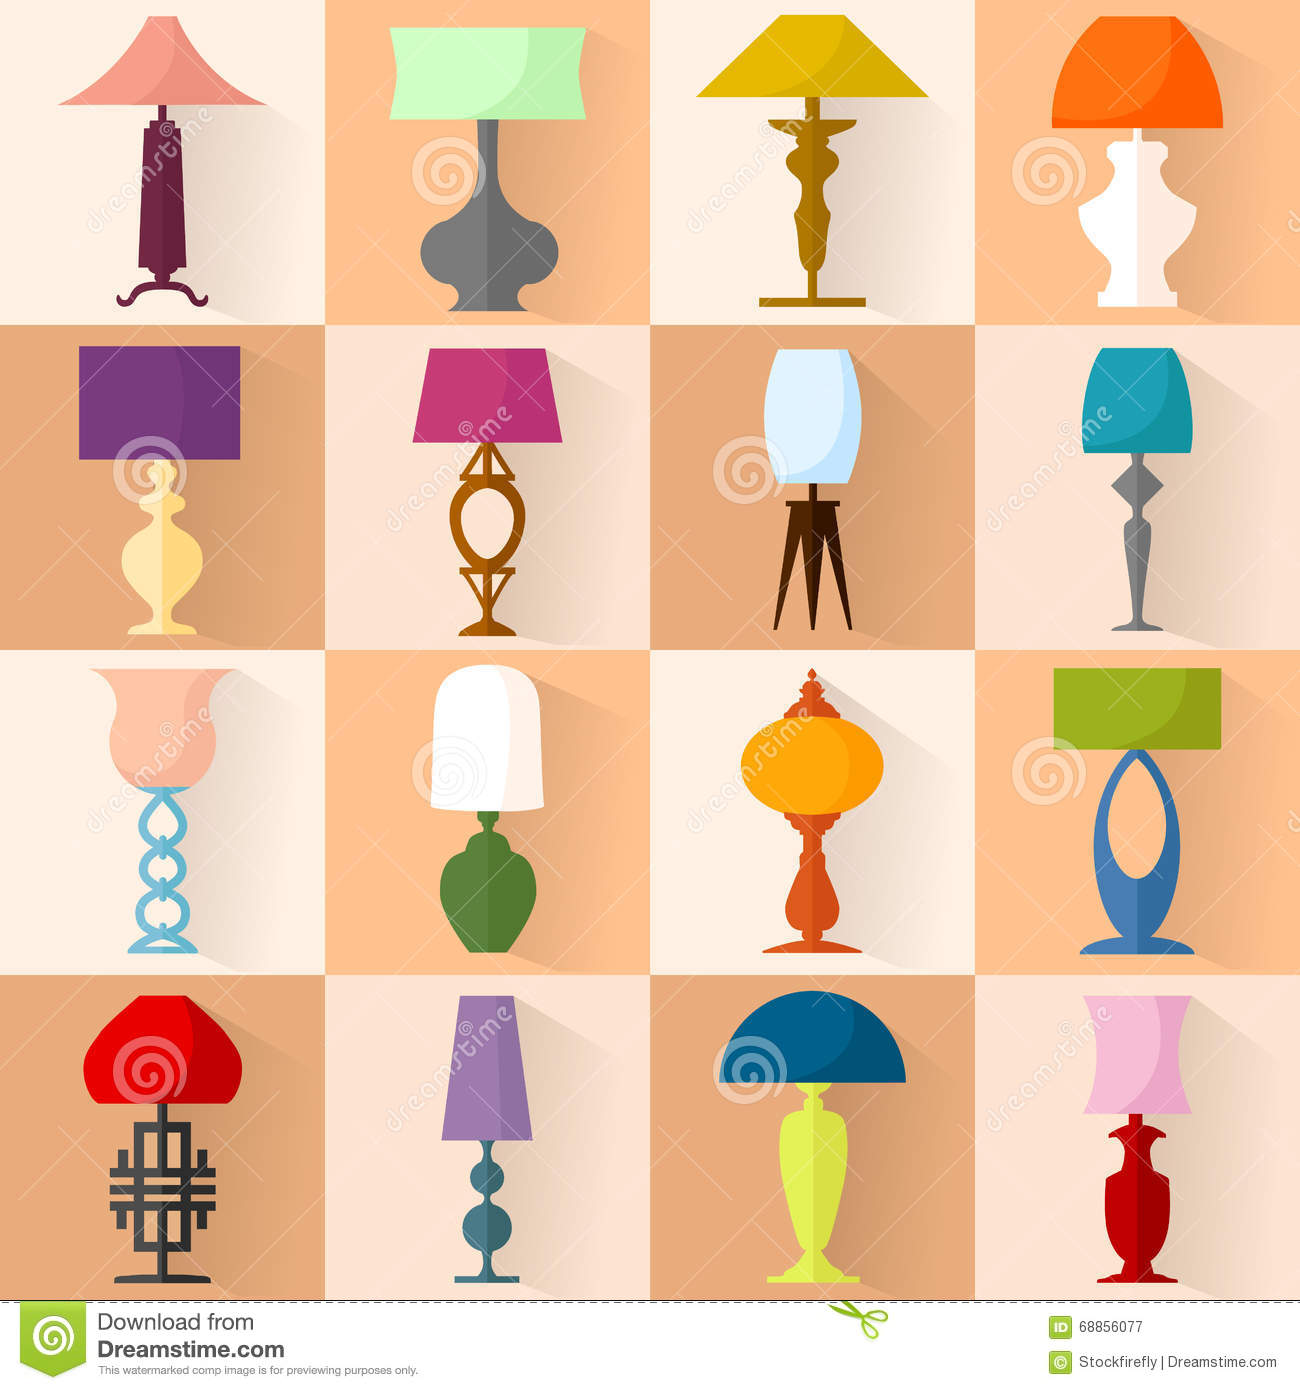 Staande Schemerlampen Modern Icon Set Of Lamps Modern Flat Style Royalty Free Stock